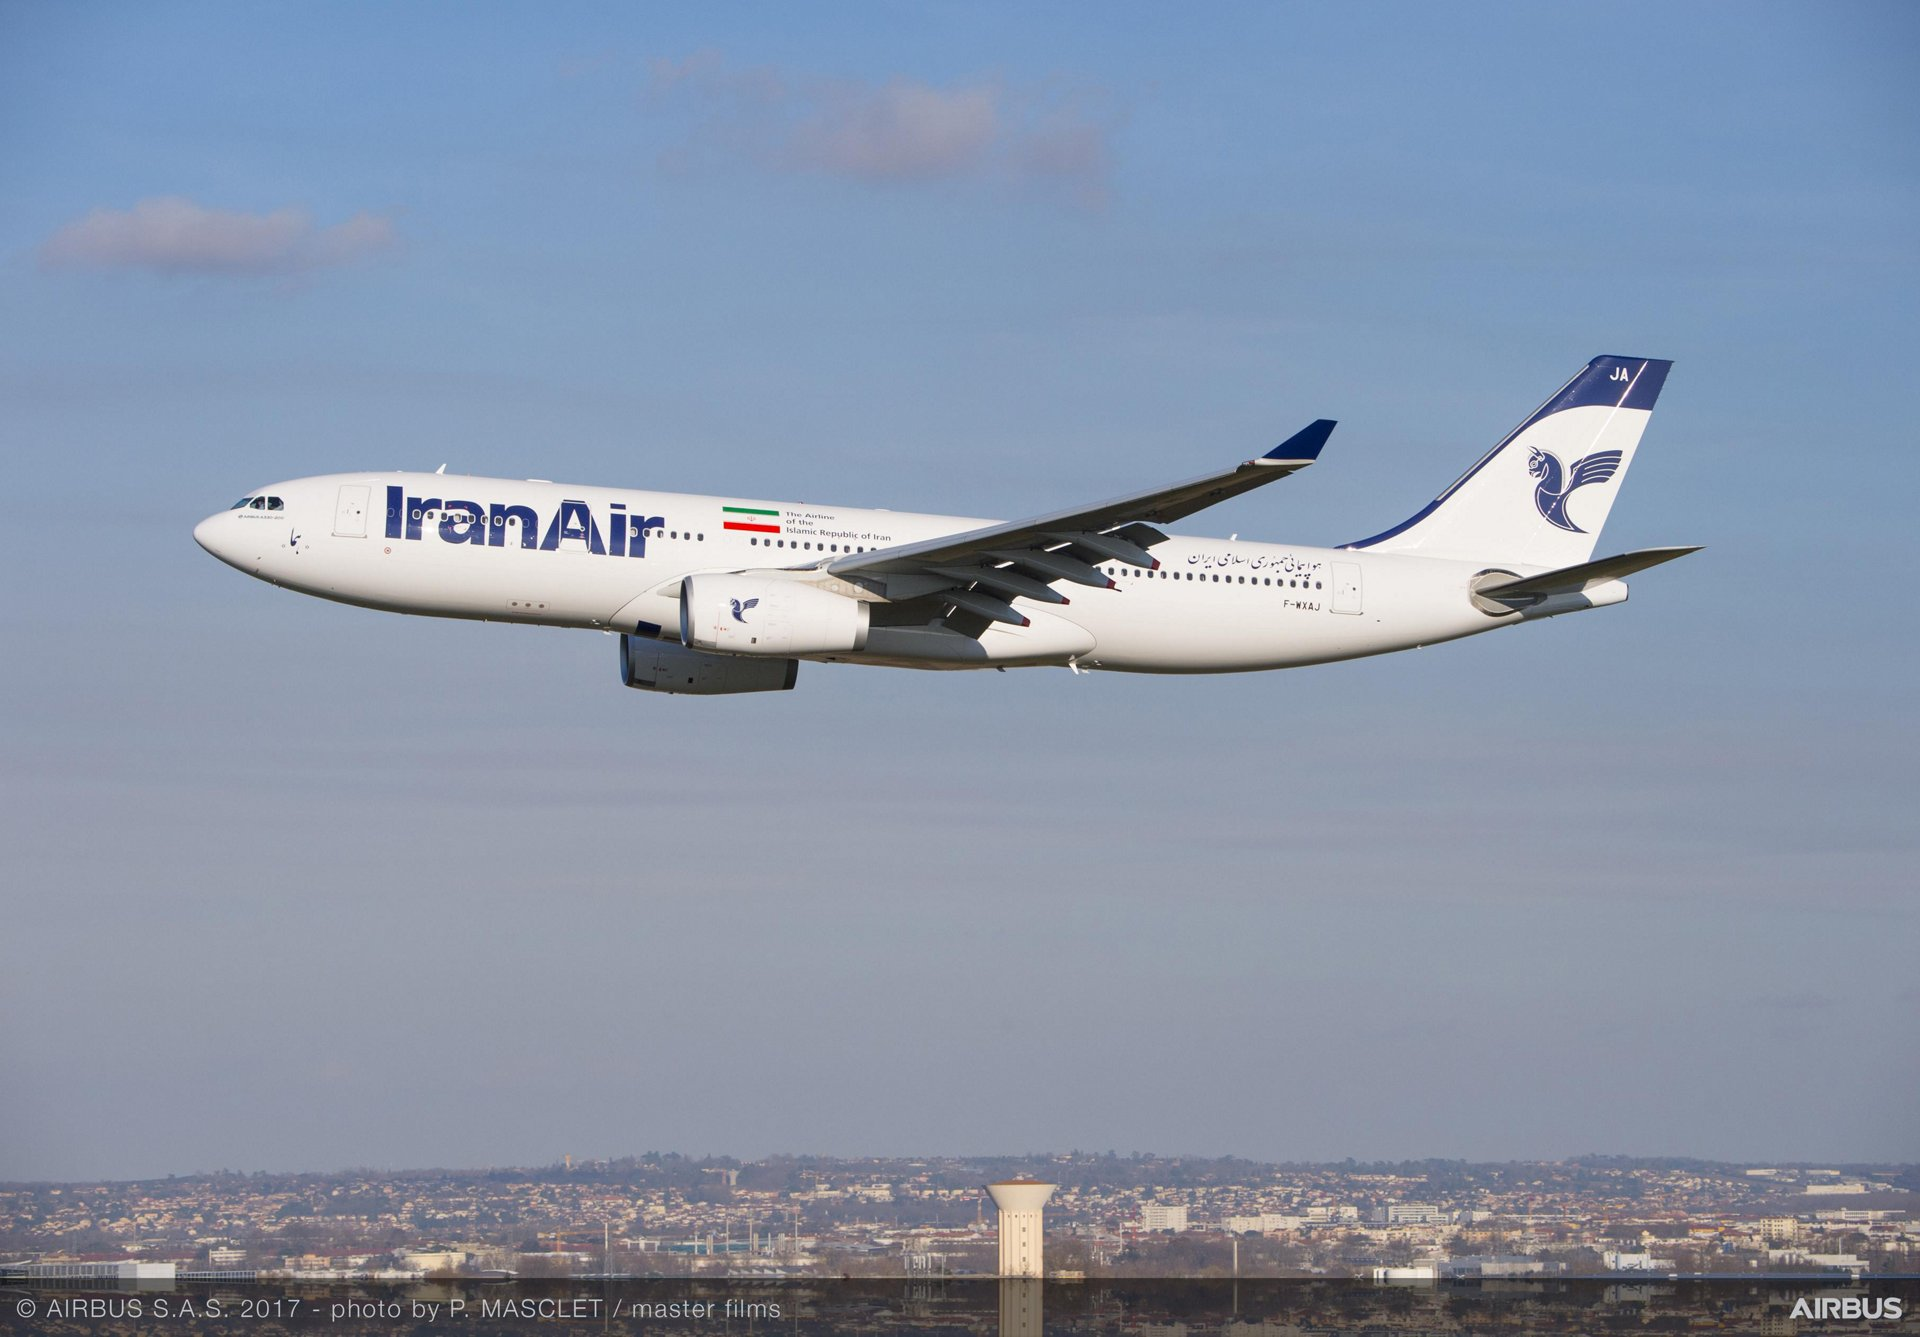 Iran Air's first new A330-200 jetliner – delivered in March 2017 – features a two-class cabin layout that seats 32 passengers in business and 206 in economy